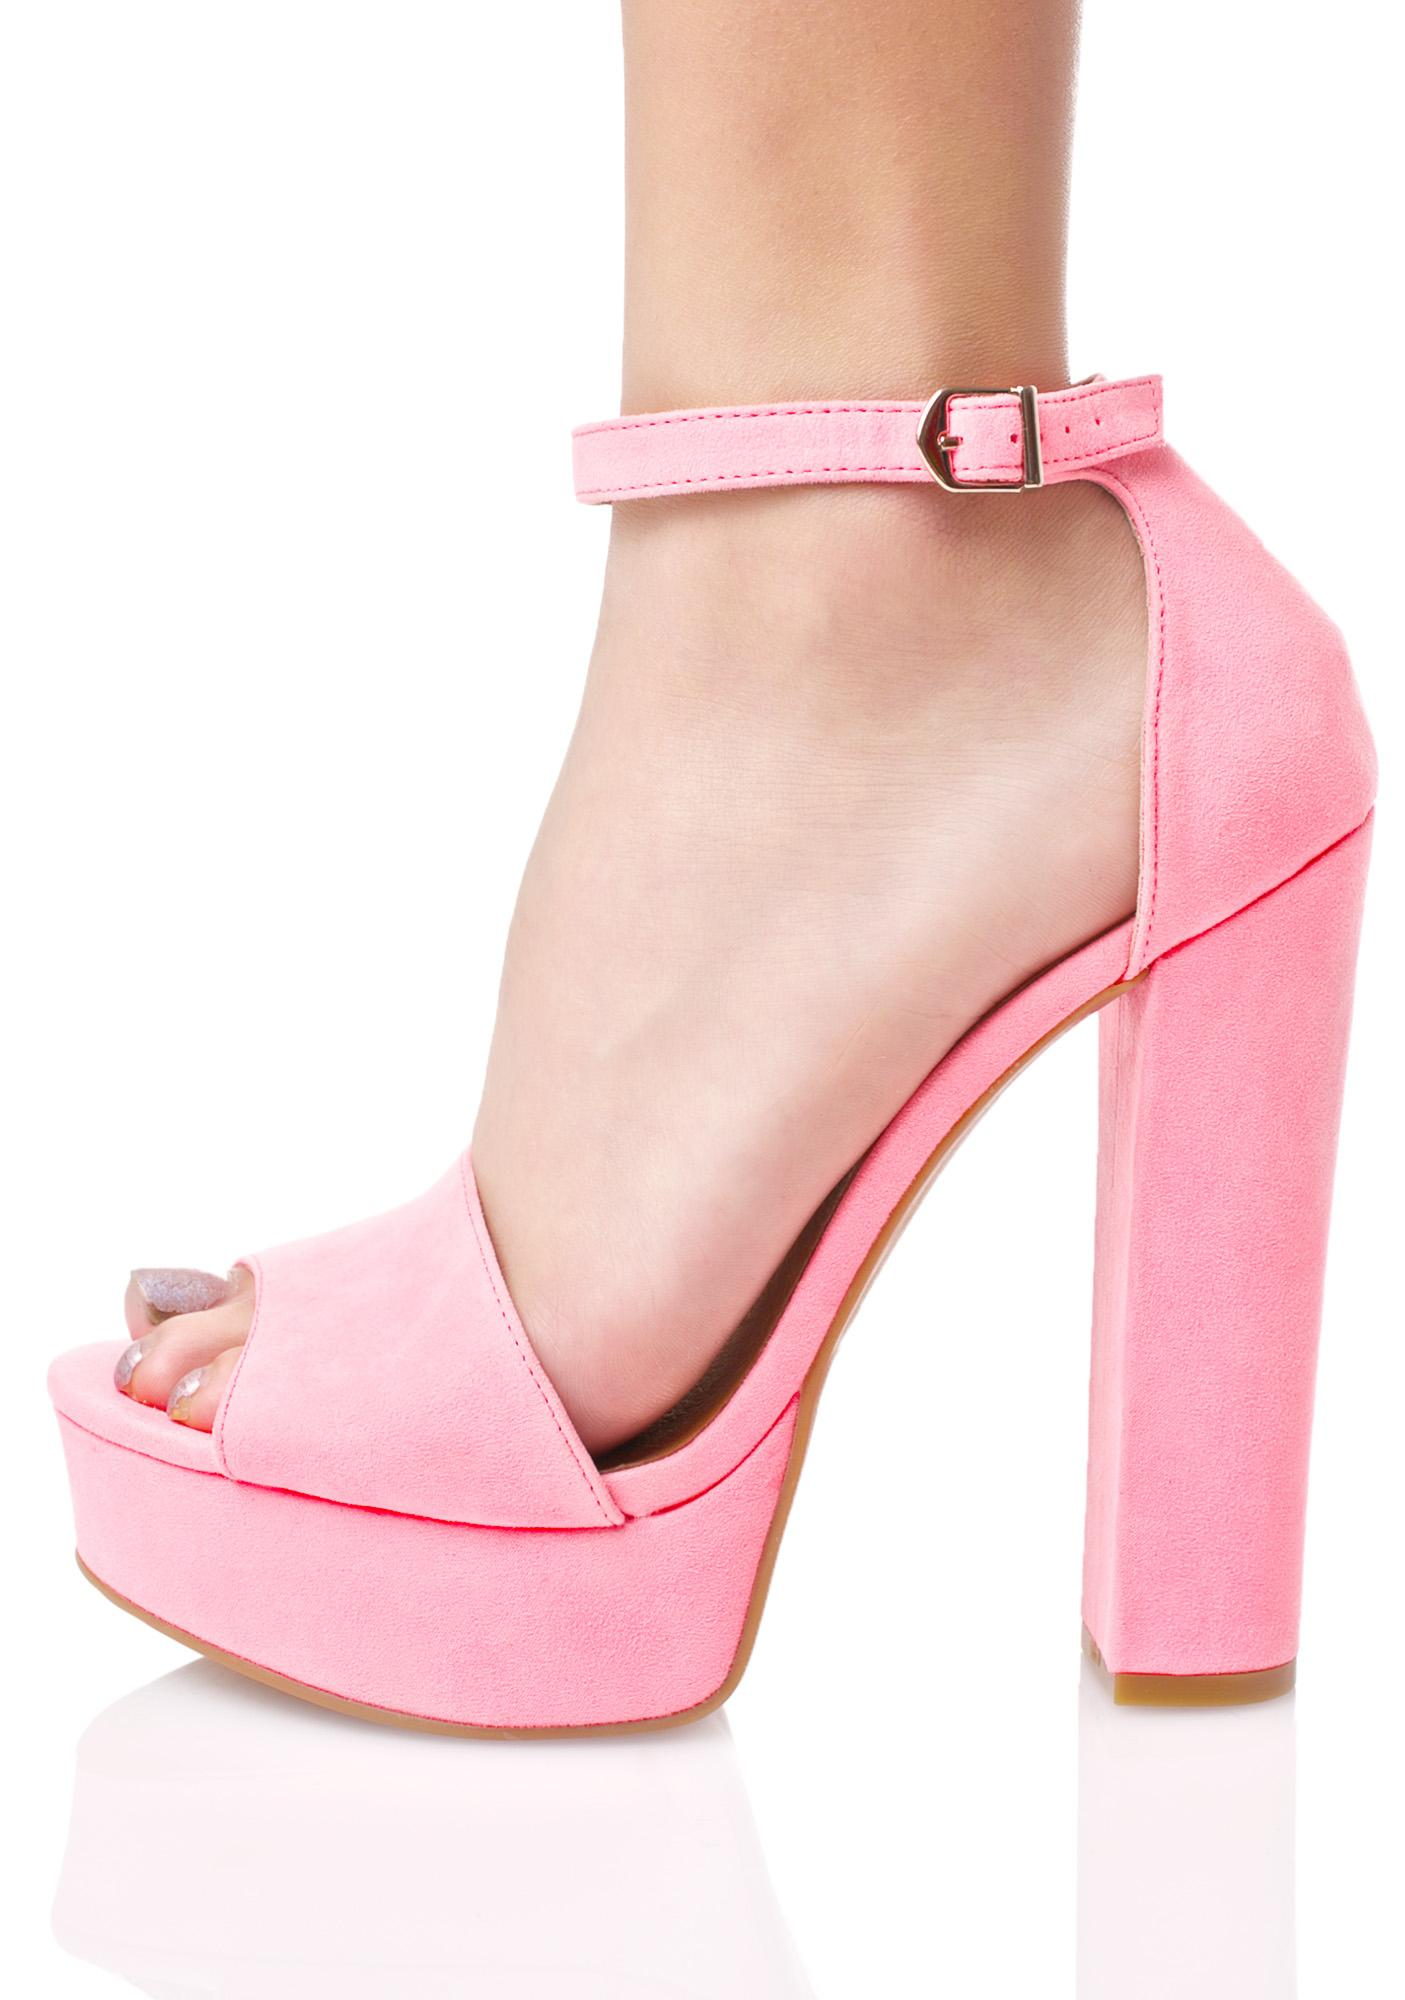 f4736d62fab9 Chinese Laundry Avenue Platform Heels  Chinese Laundry Avenue Platform  Heels ...